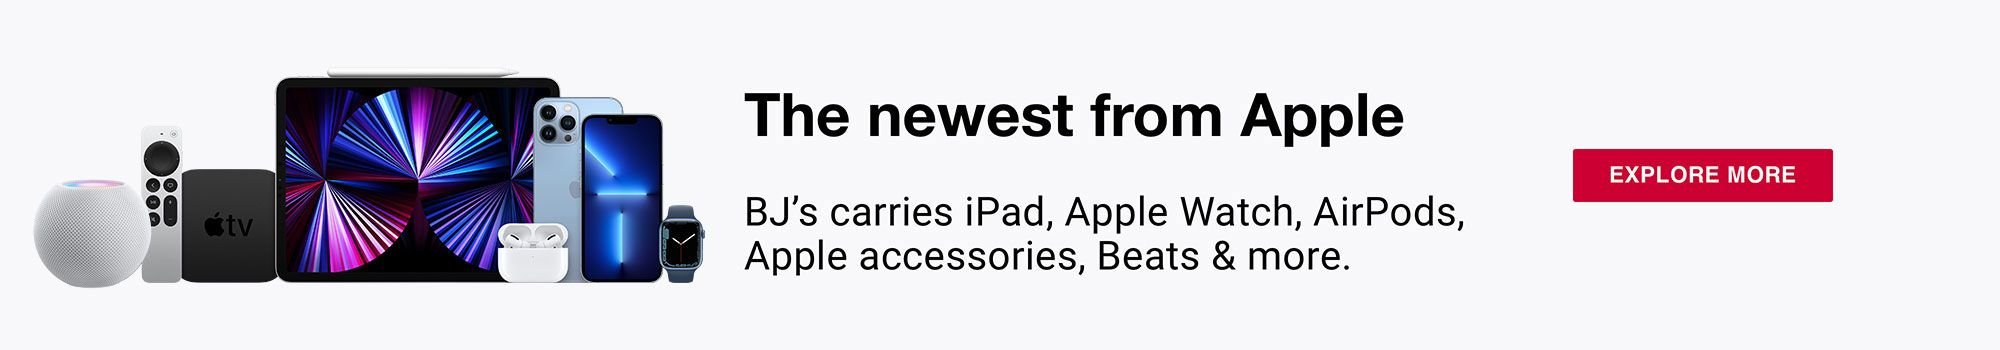 The newest from Apple. BJ's carries iPad, Apple Watch, AirPods, Apple accessories, Beats & more. Click to shop all